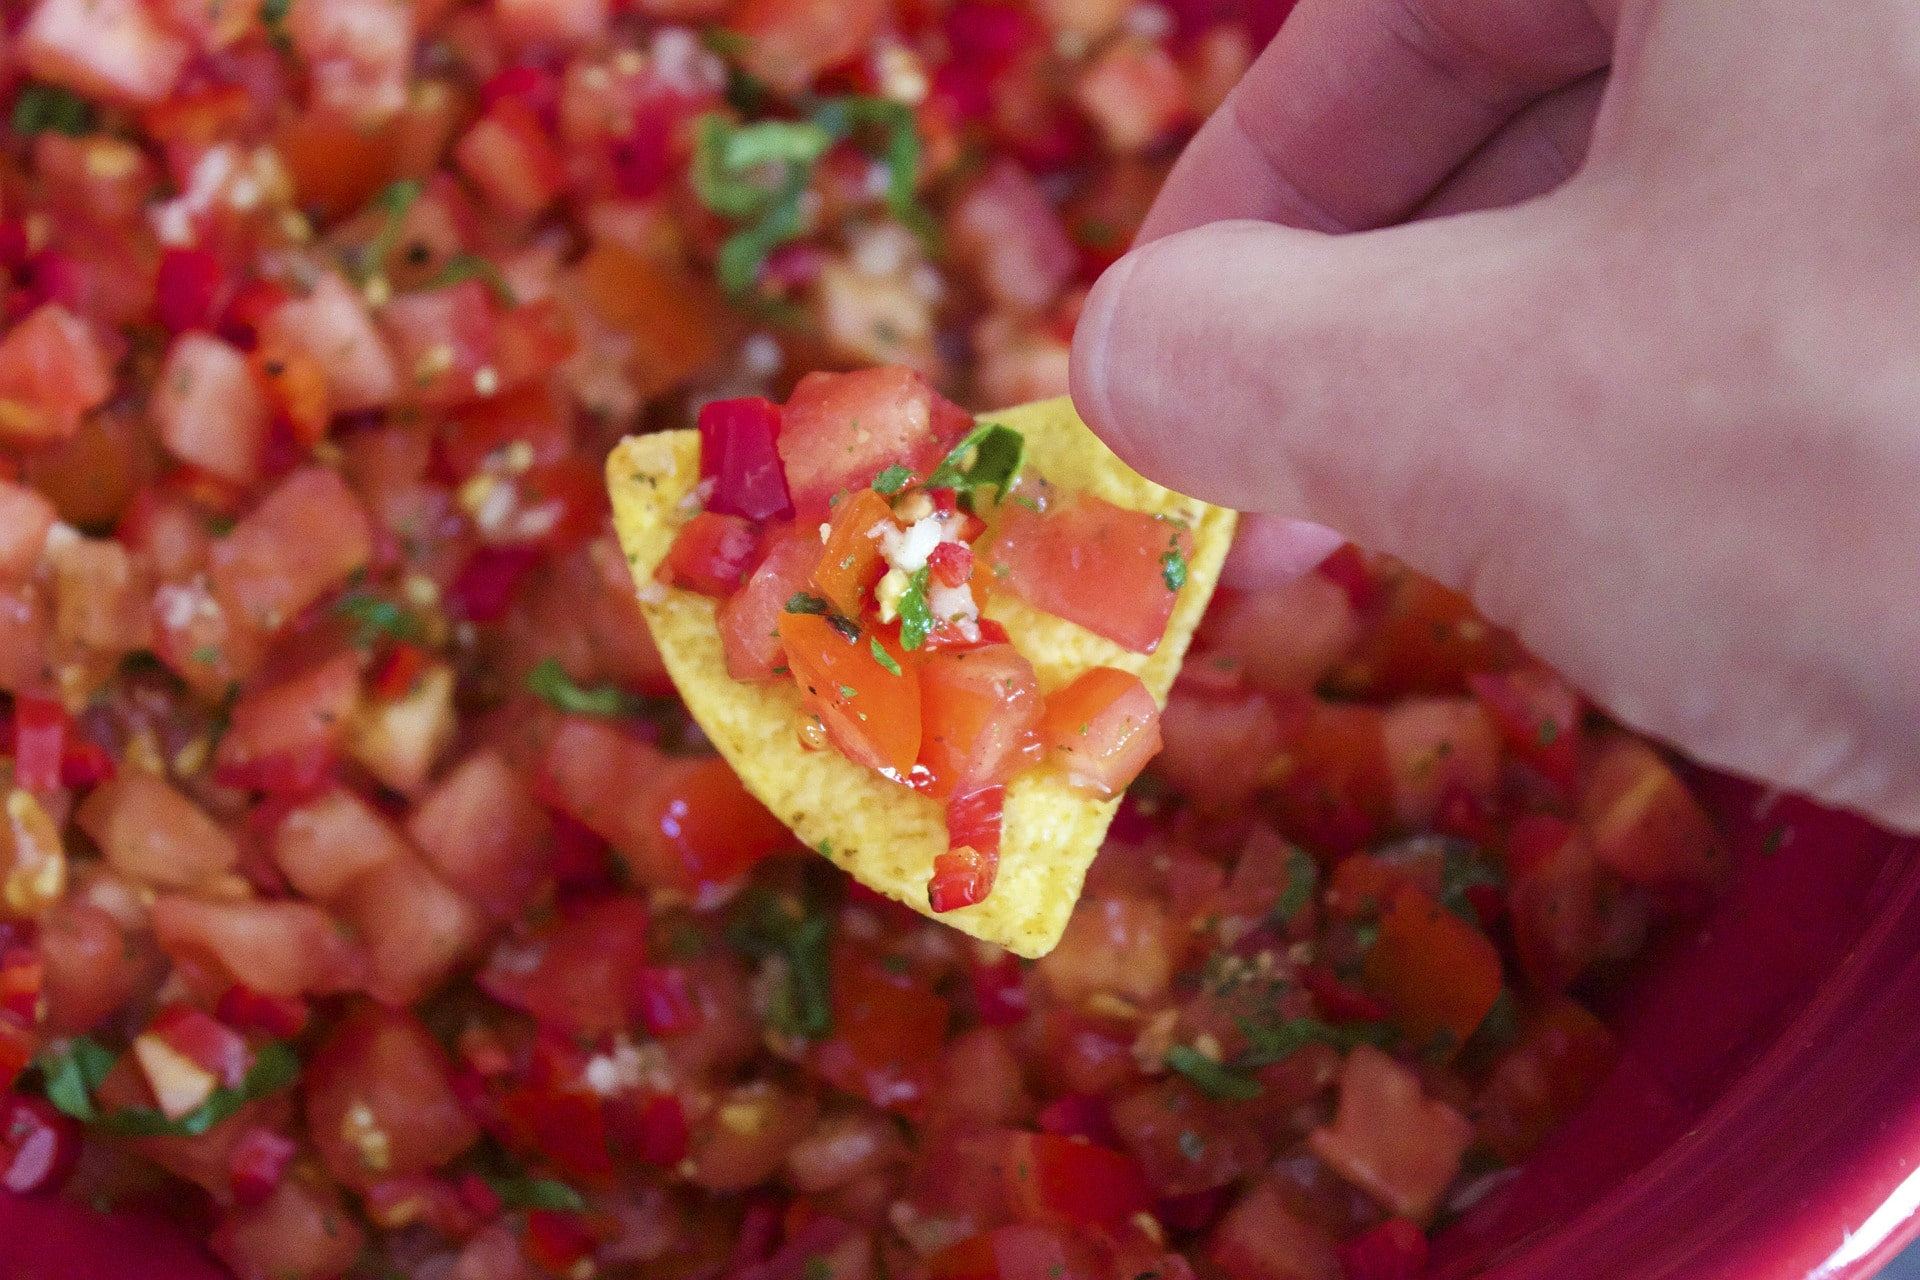 Hand holding chip covered in fresh salsa